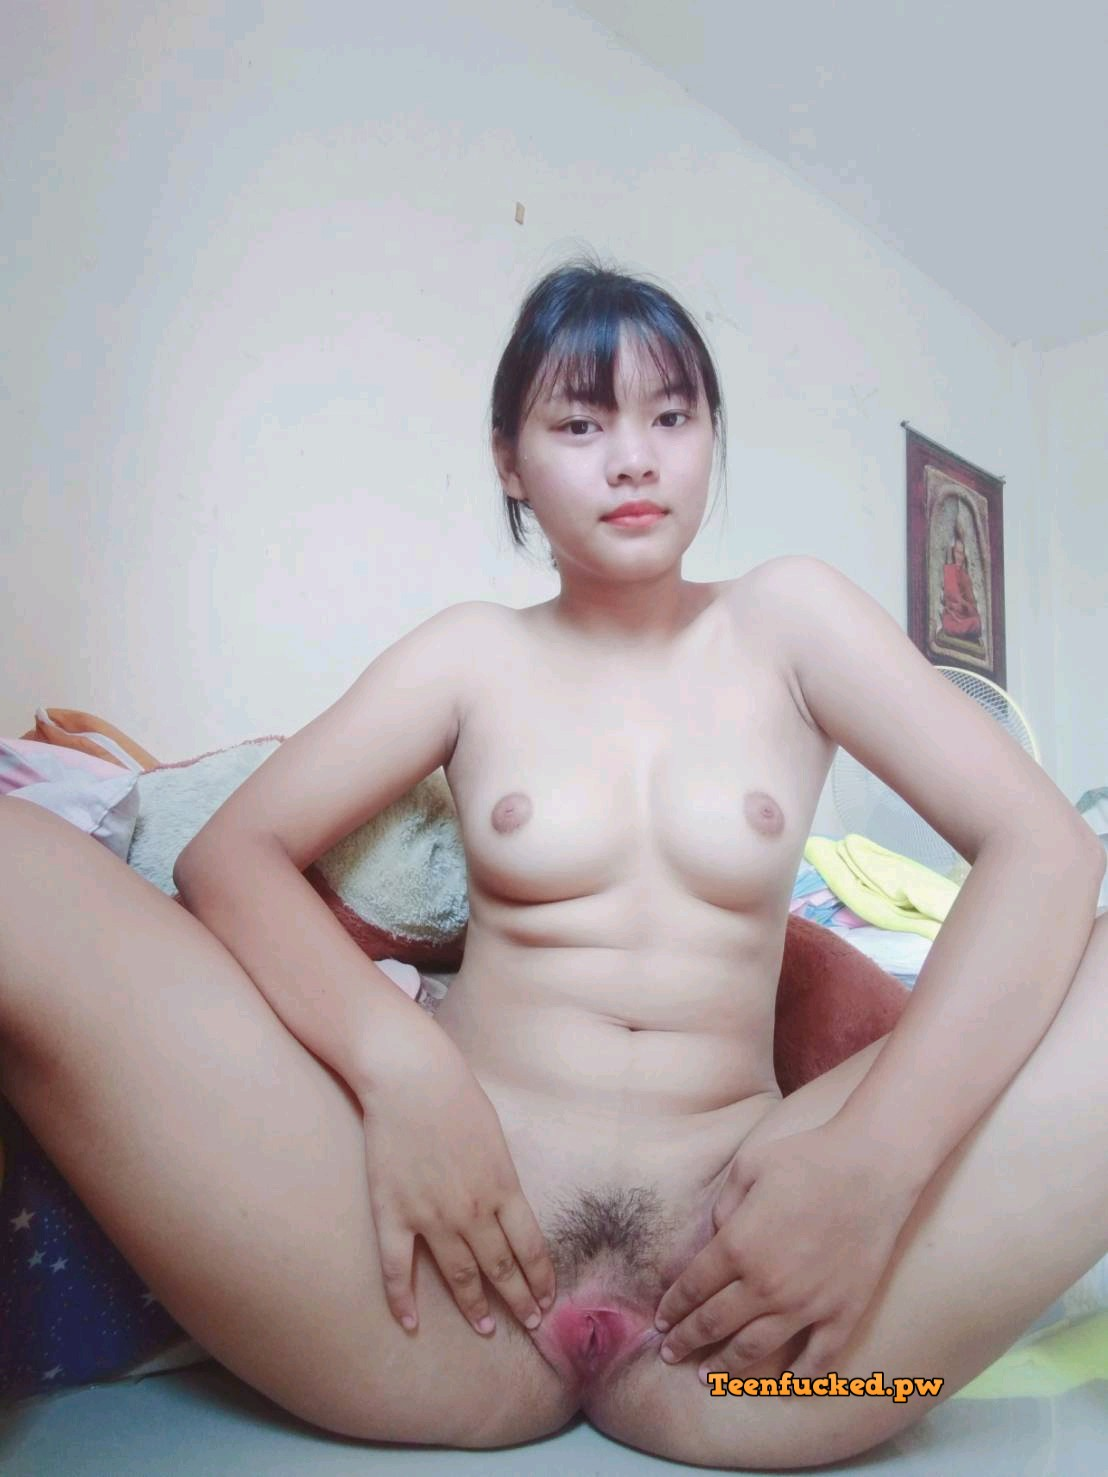 kPs sNgPWLs wm - Asian thai girl nude photo selfie pussy hole 2020 gg